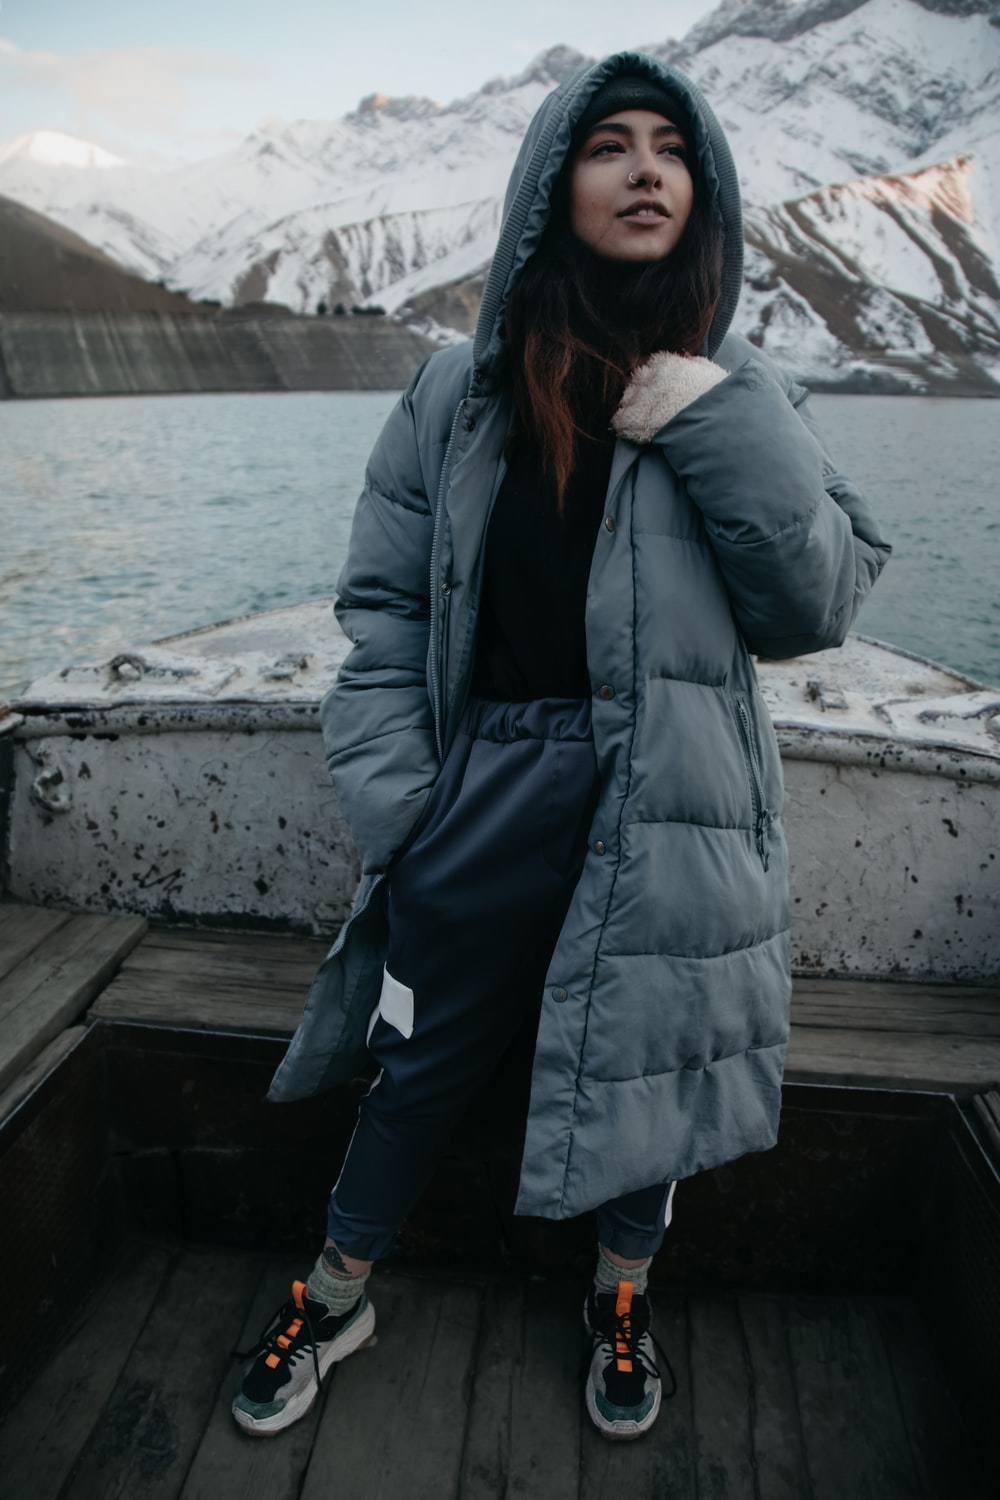 woman in black jacket standing on wooden dock during daytime